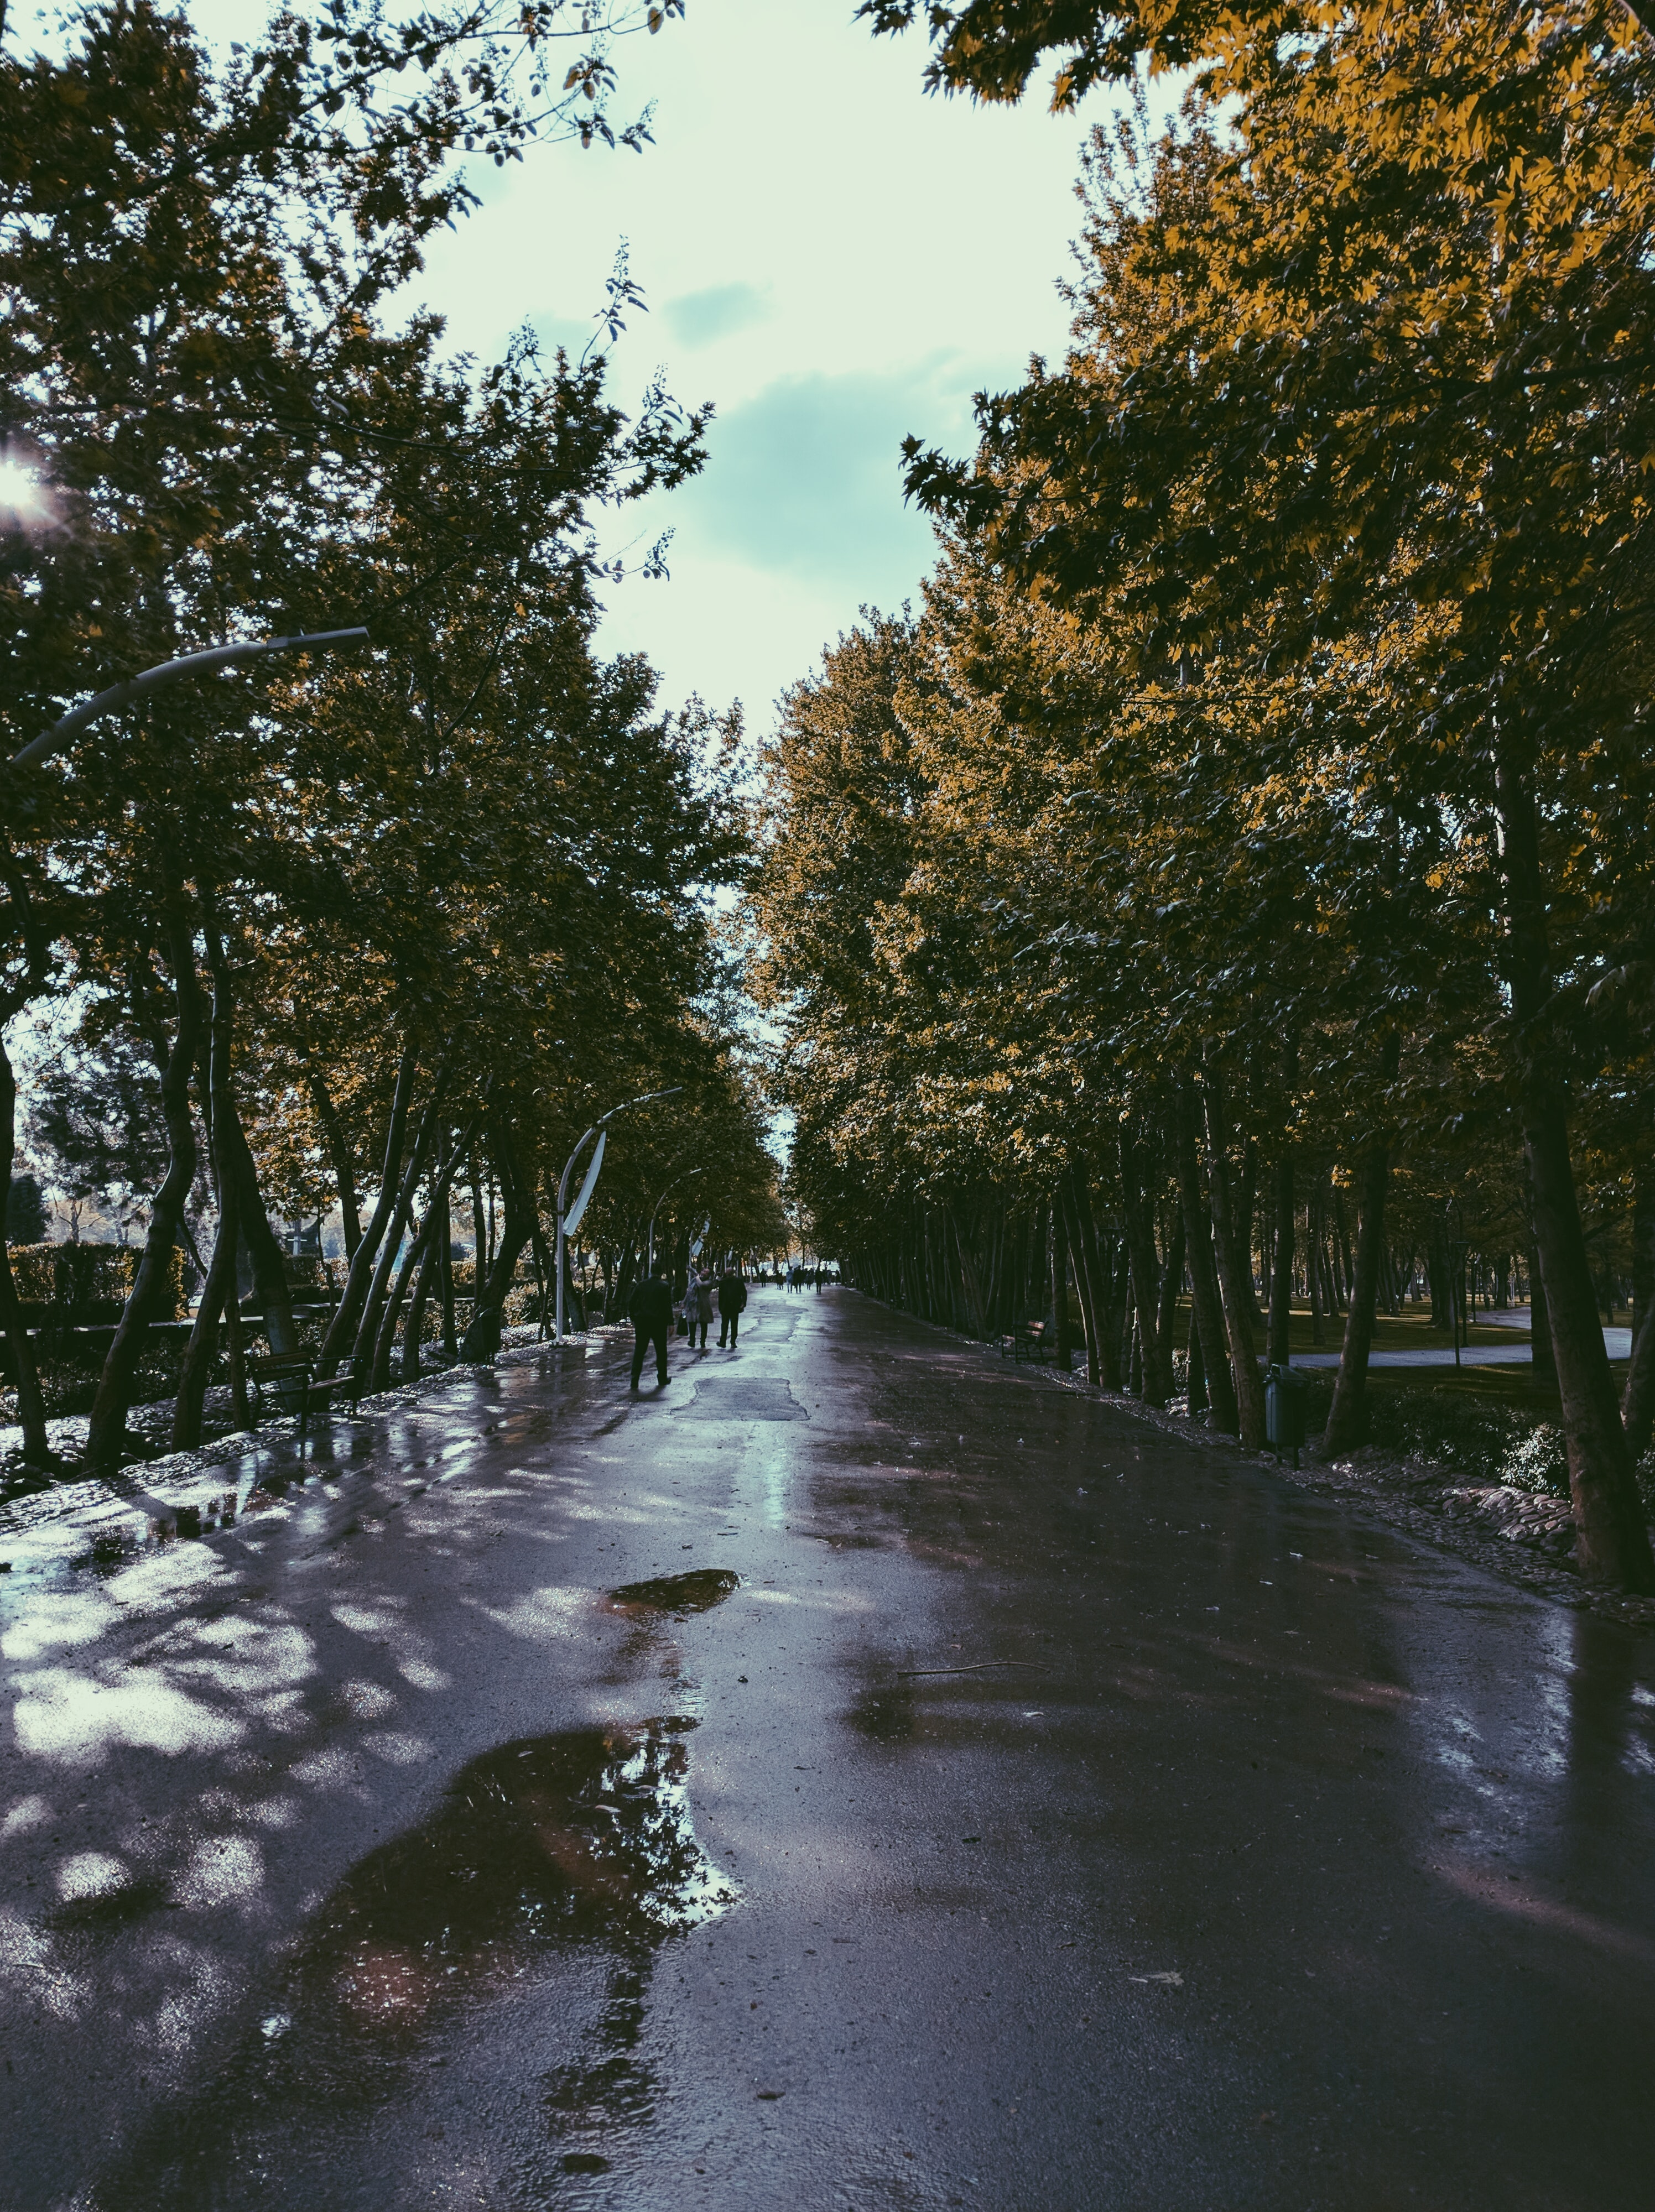 Free Unsplash photo from mohammad alizade